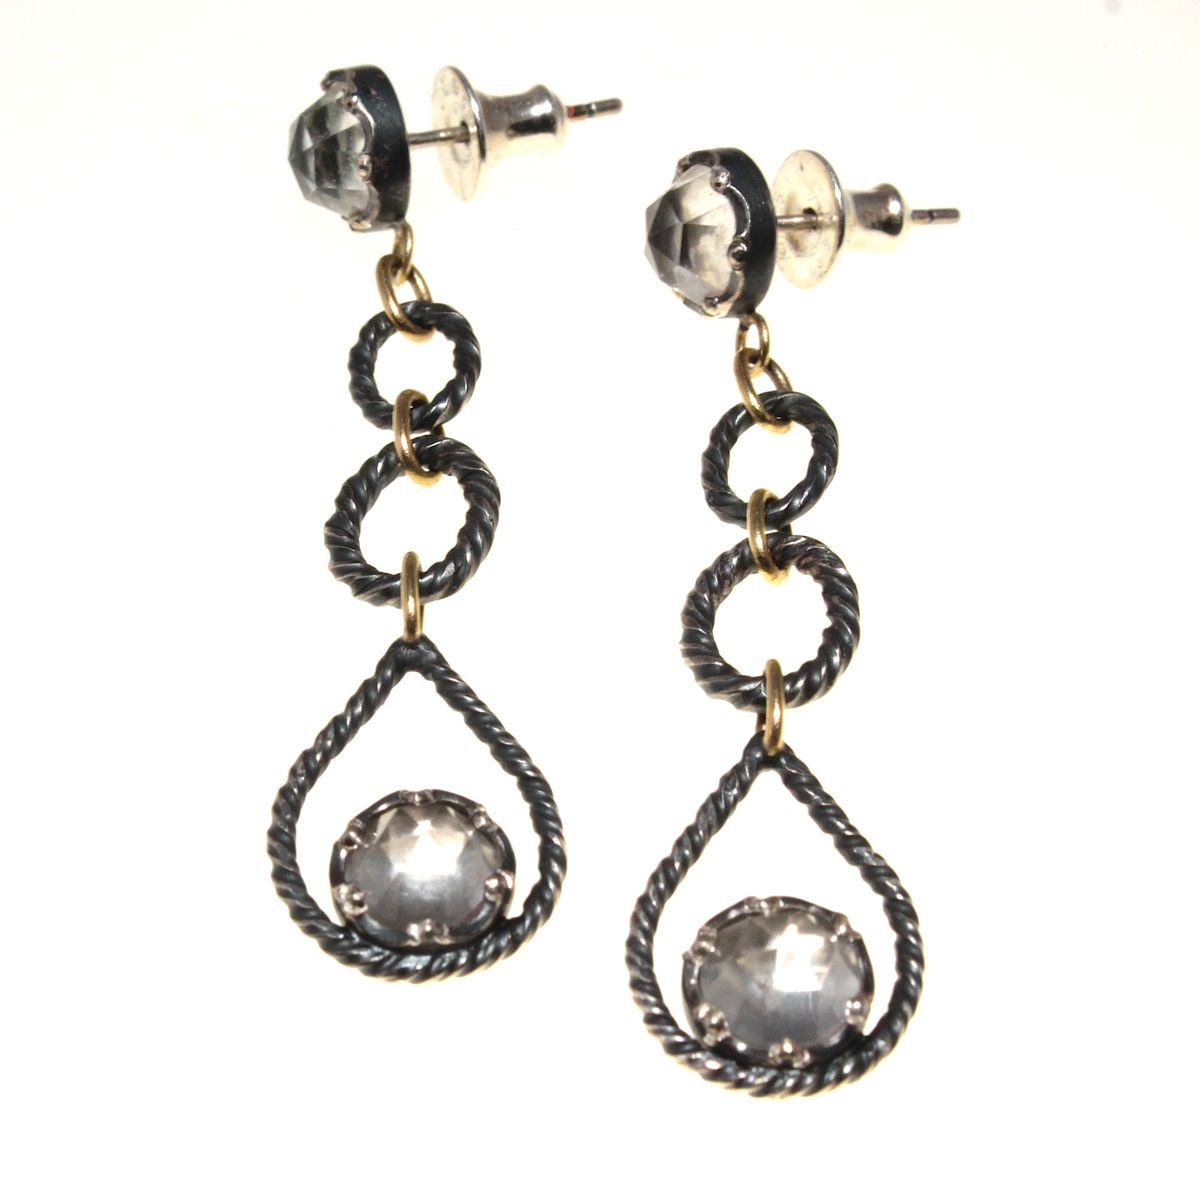 Cras Tibi Drop Earrings - product image